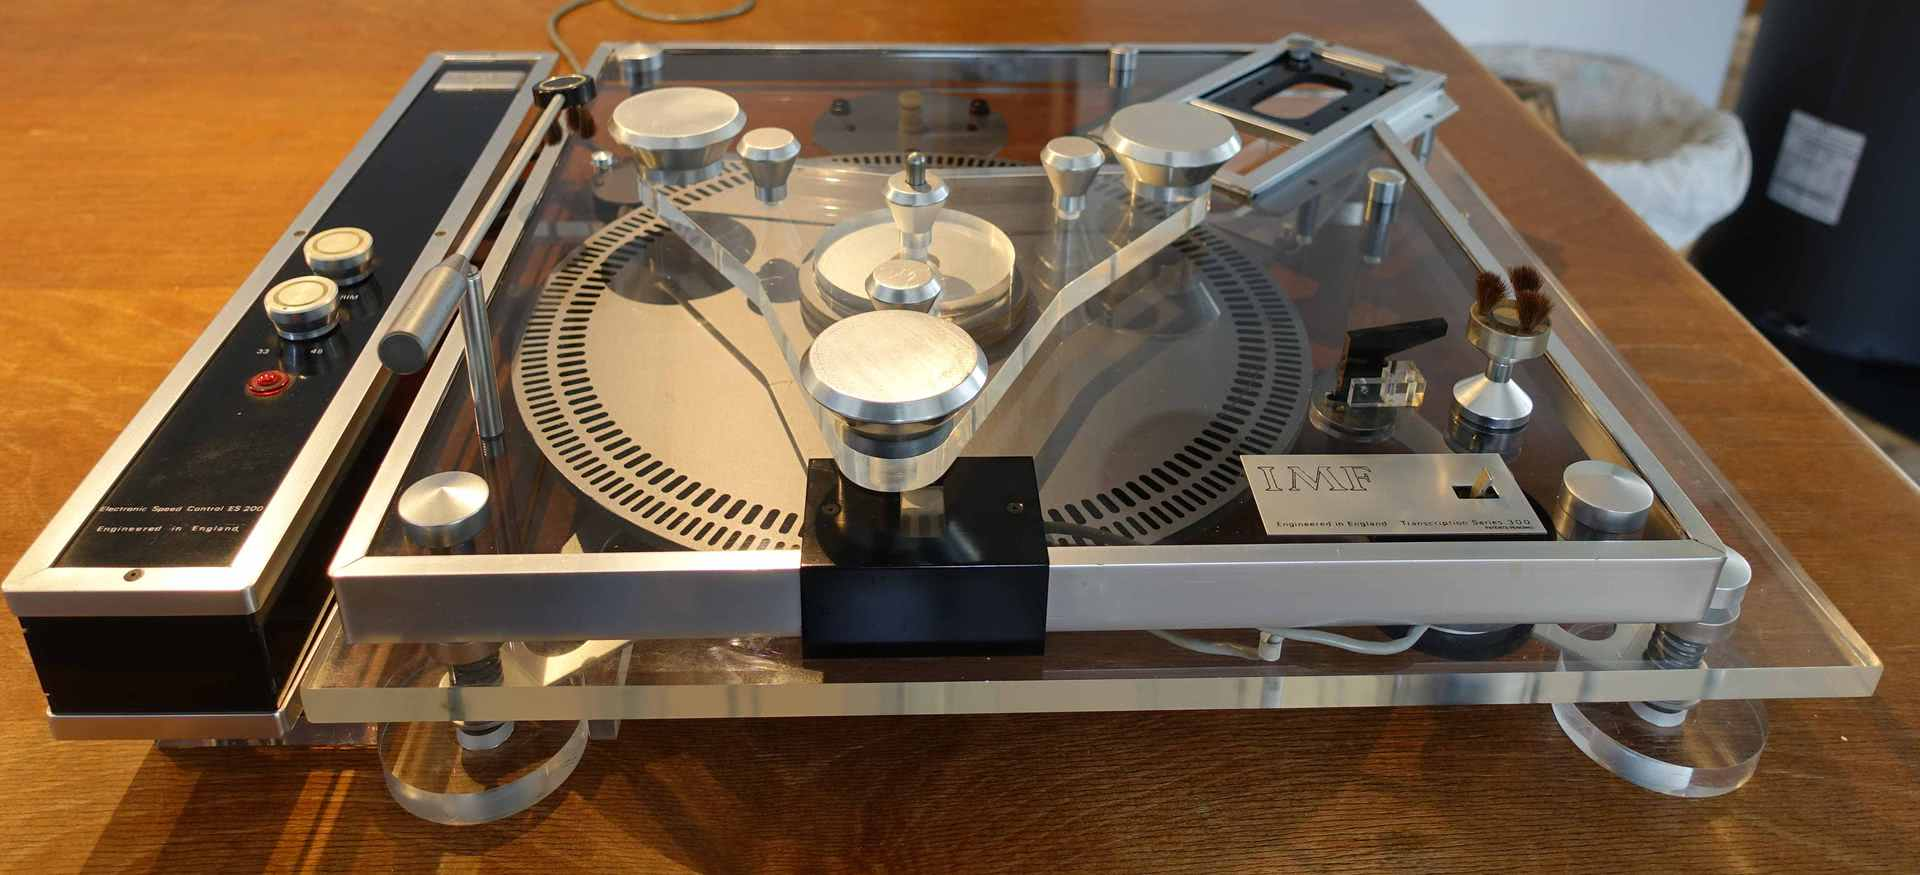 Imf The Very Rare Transcription 3000 Turntable Recent